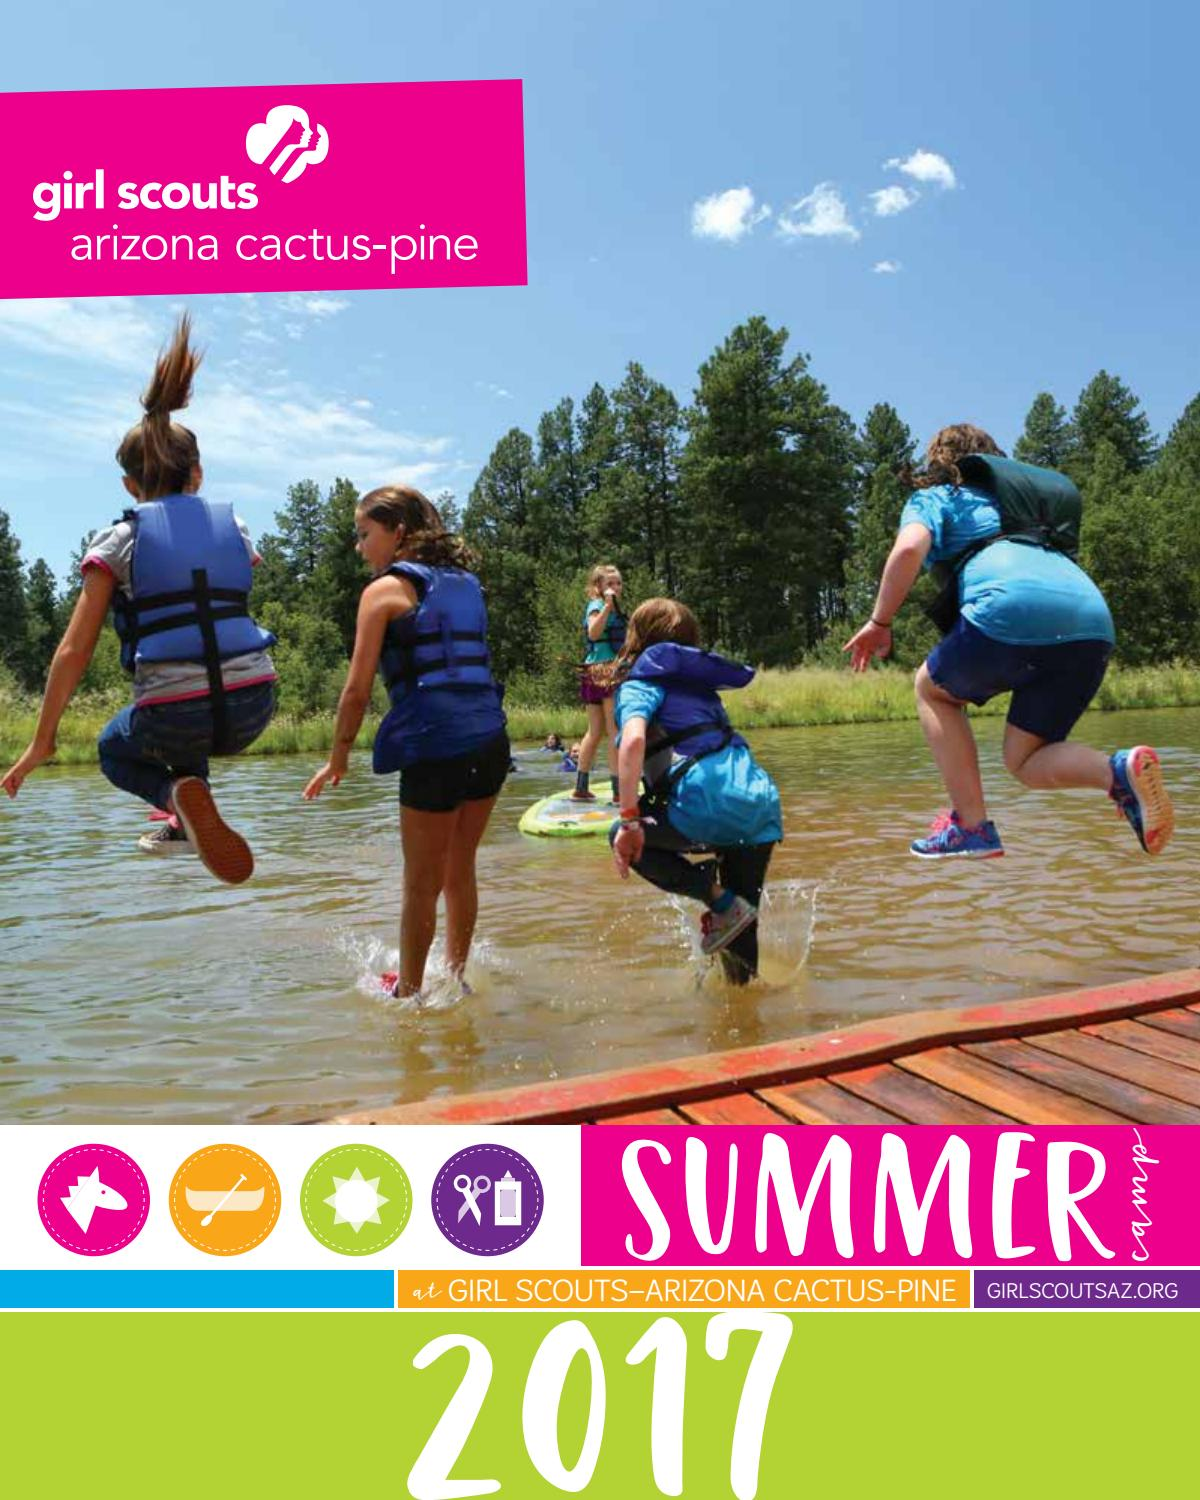 girl scouts summer camp brochure 2017 by girl scouts